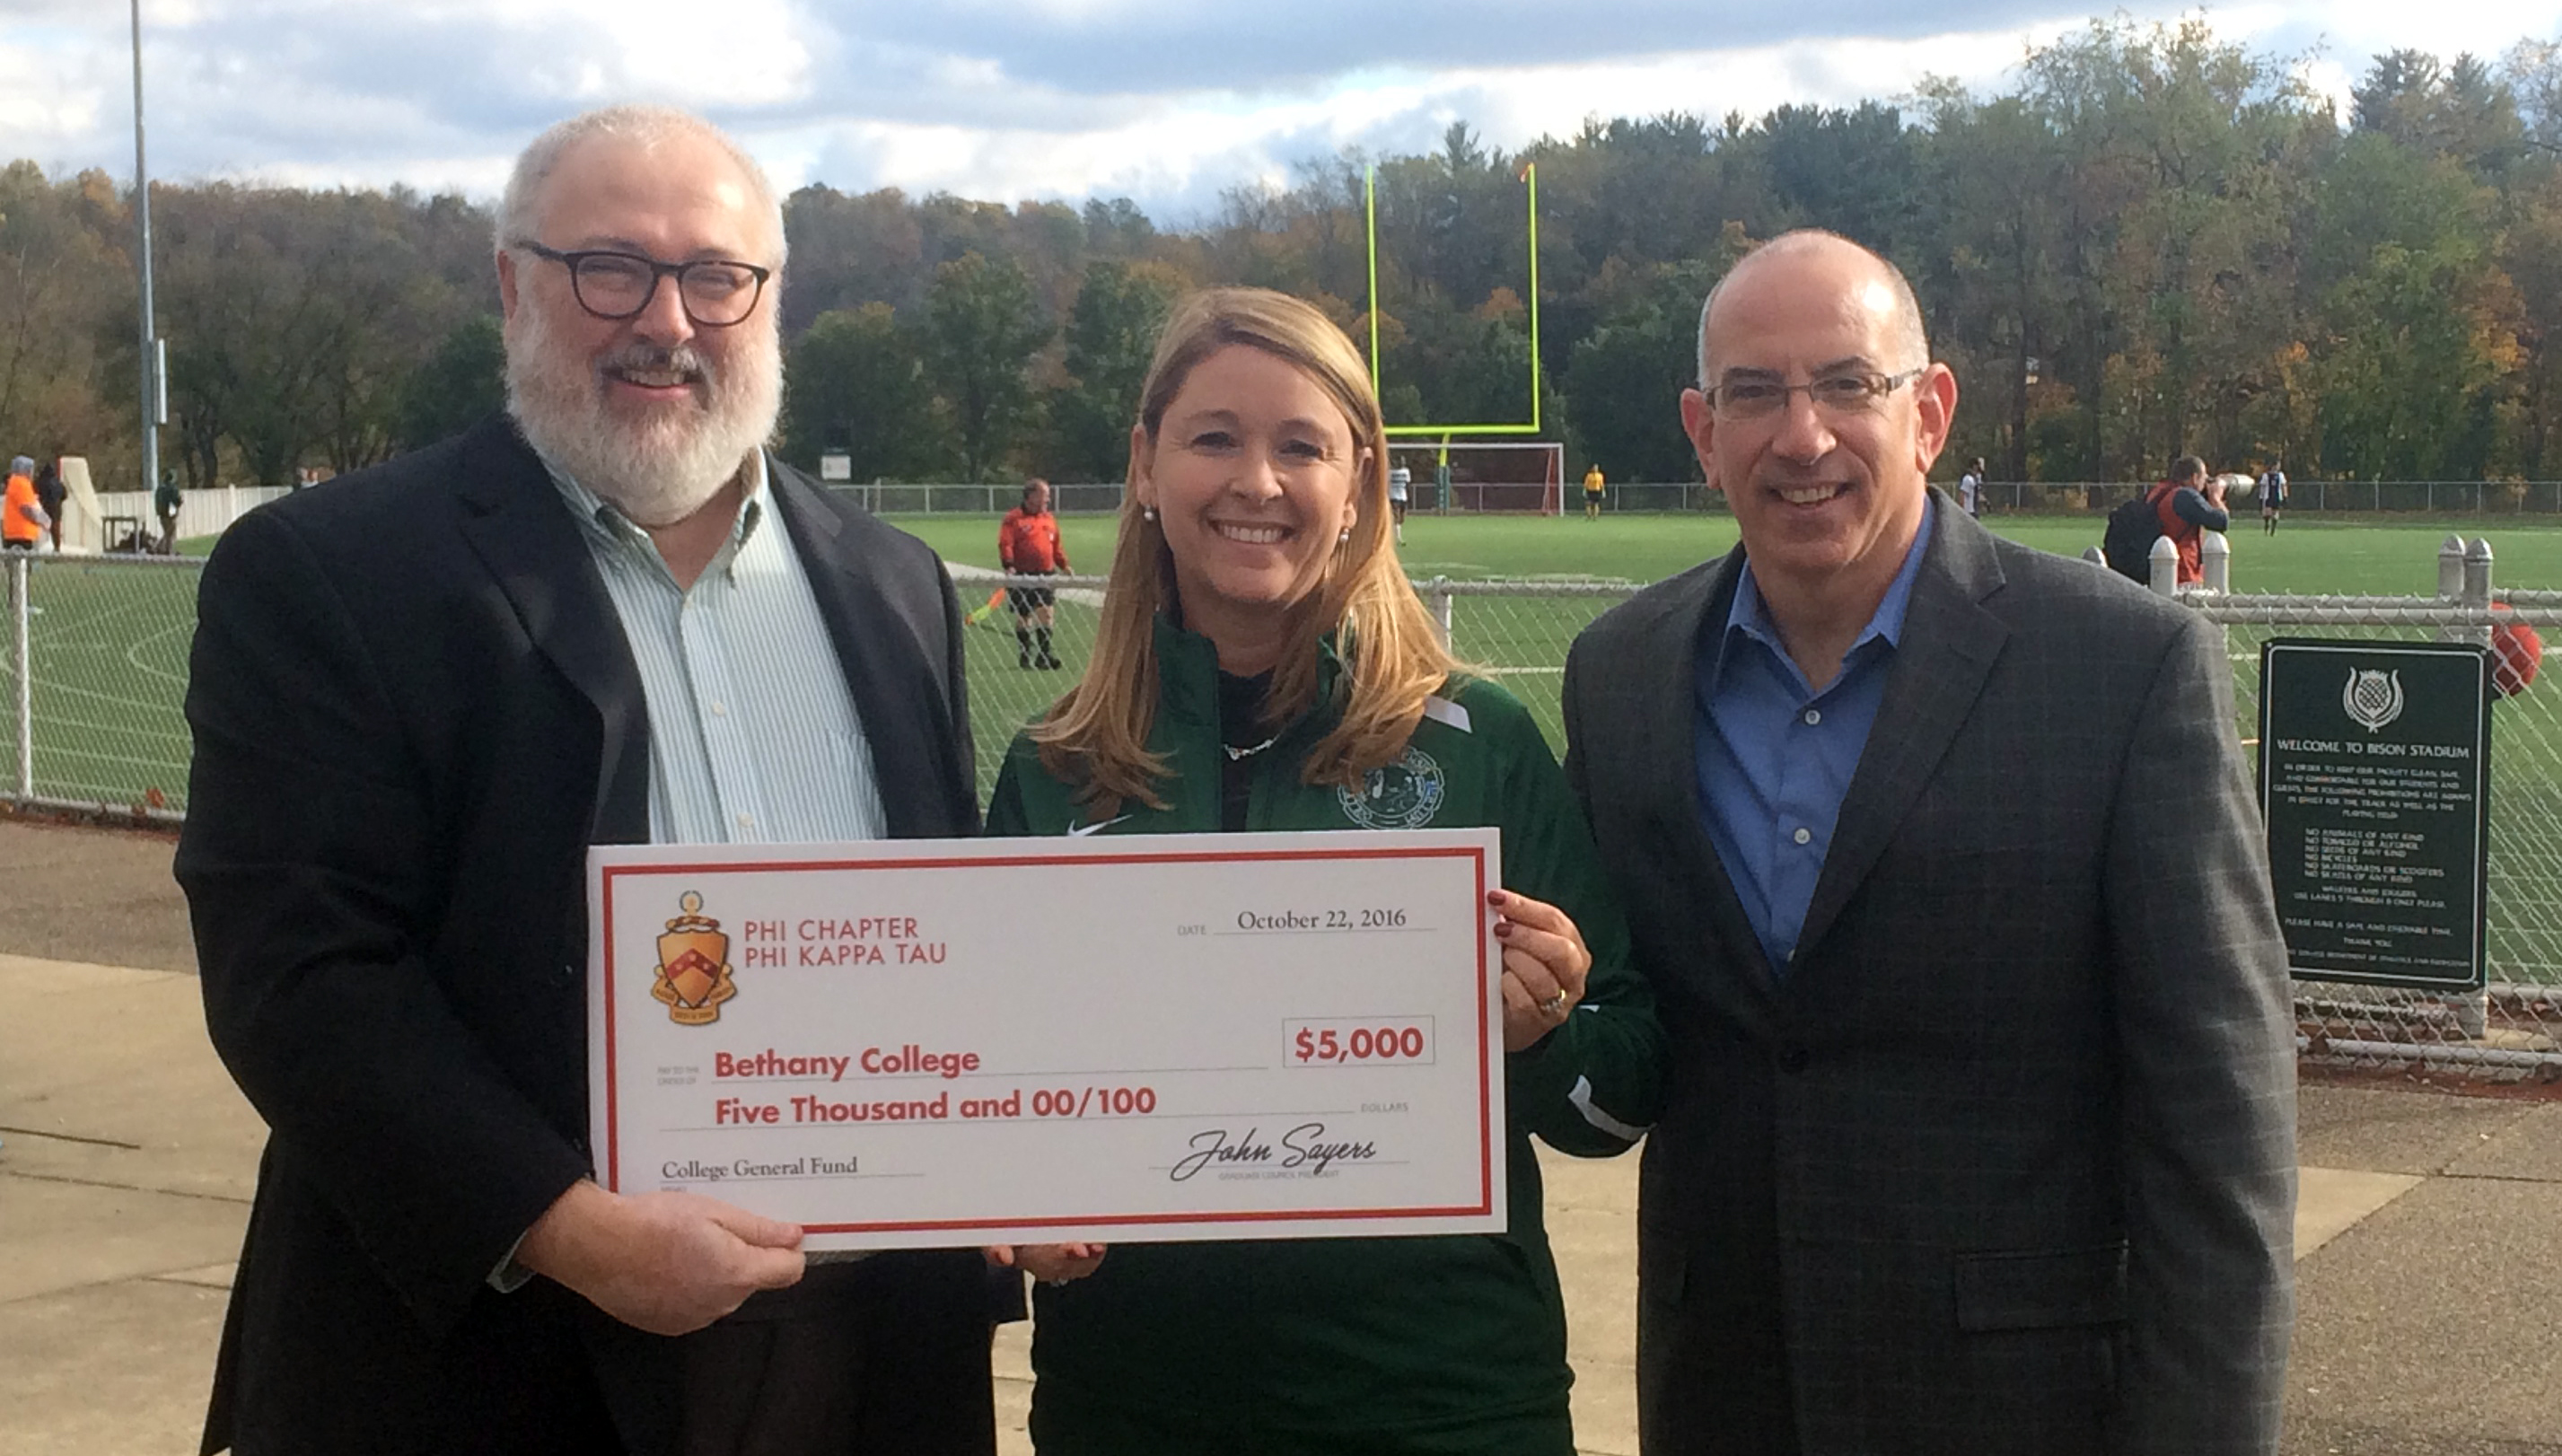 John Sayers (left) and Tom Skena present a check to Bethany President Tamara Rodenberg from Phi Chapter of Phi Kappa Tau to help in her new fundraising effort. Photo by Stephanie Gordon